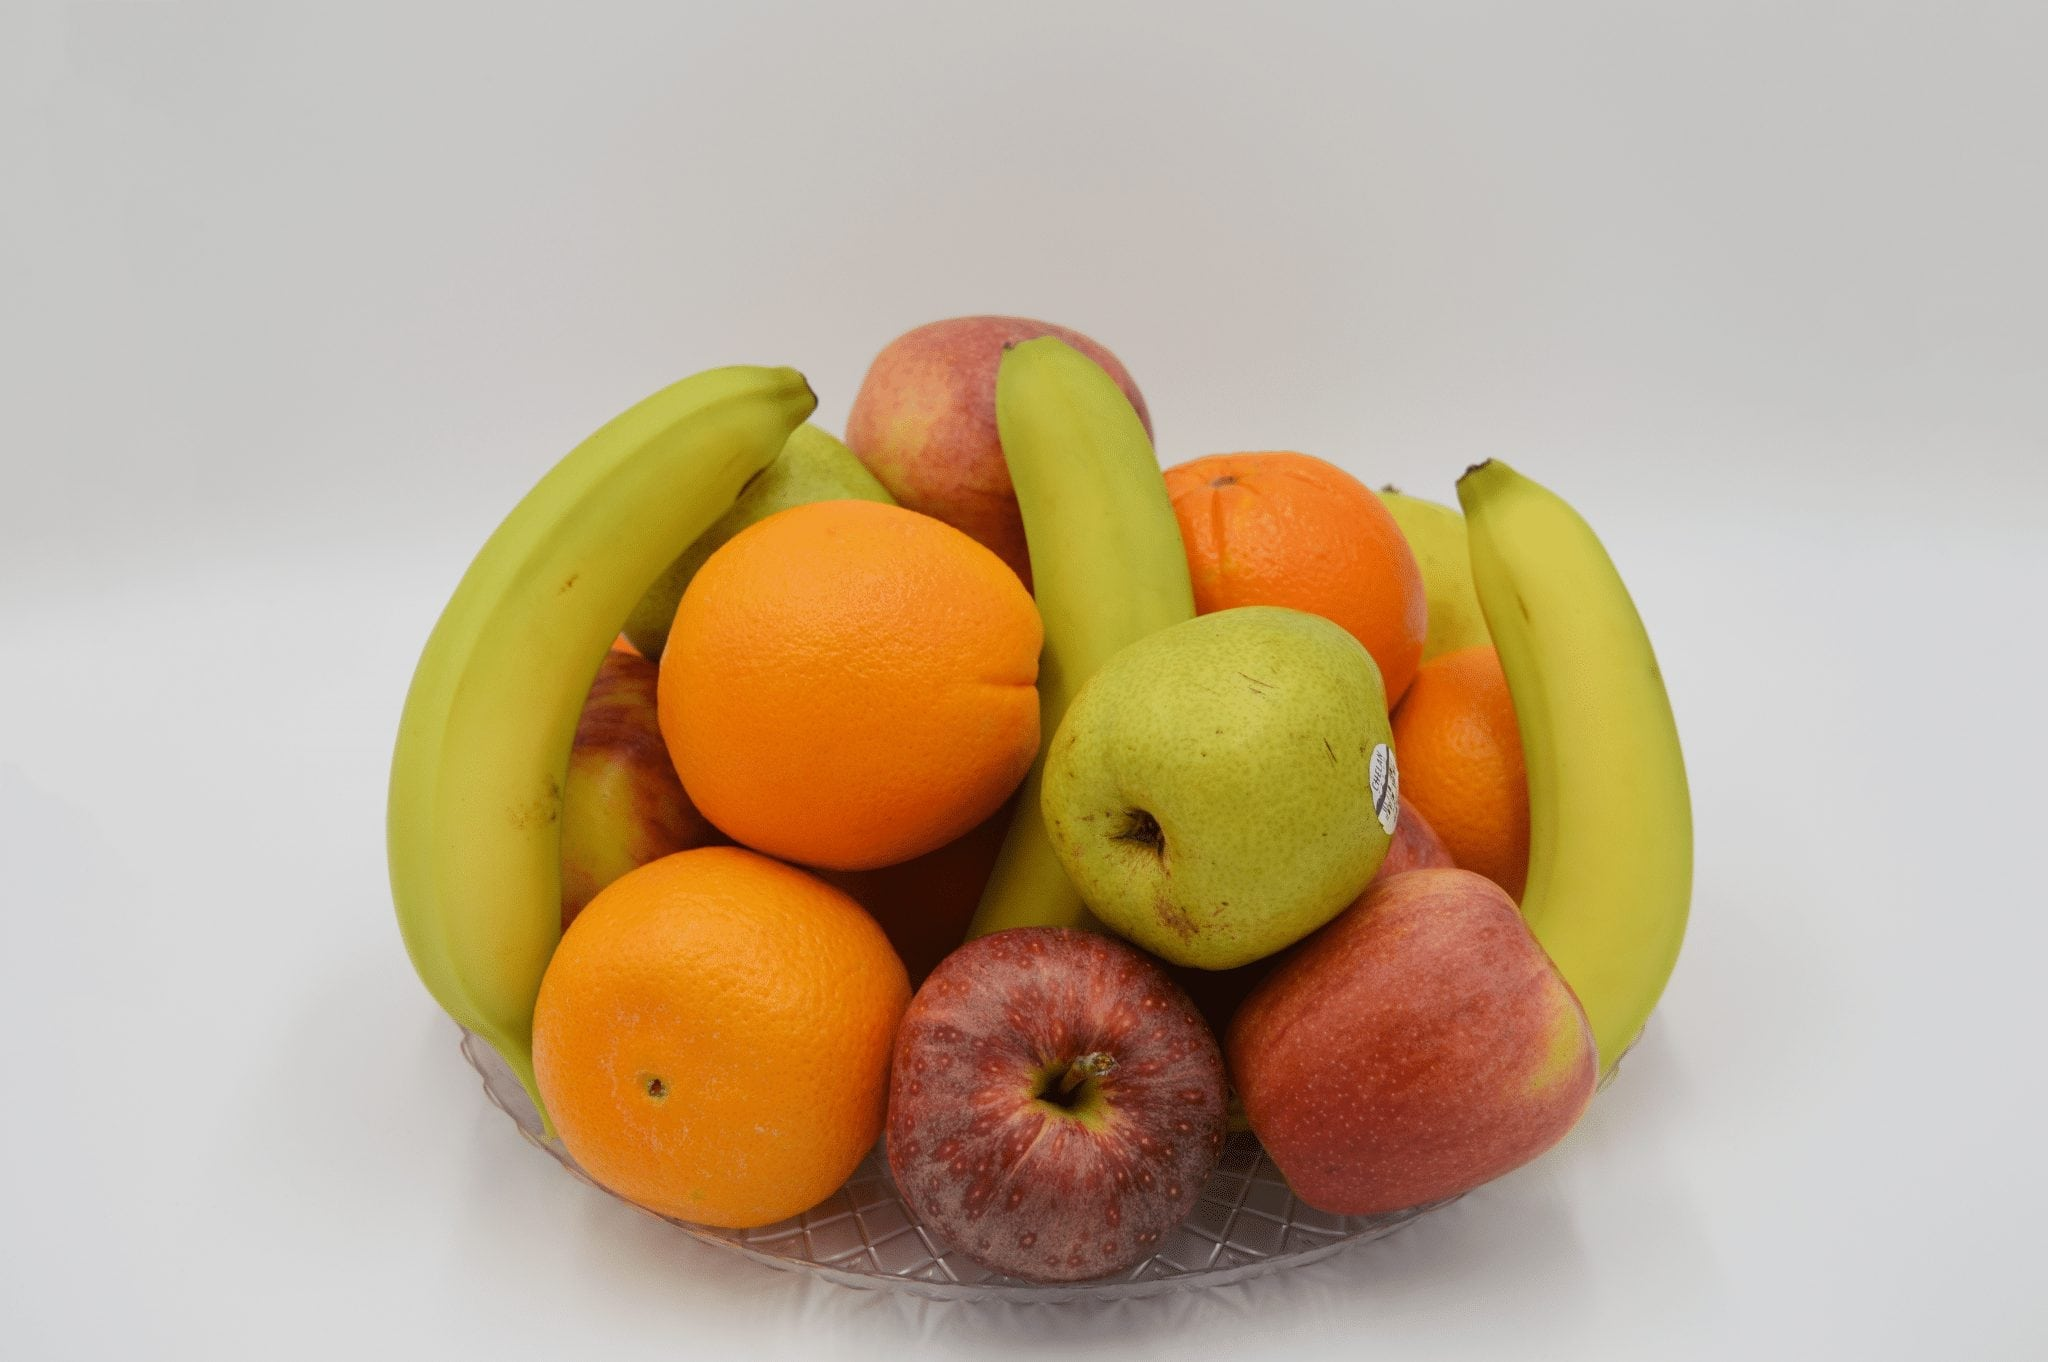 platter of apples, oranges, and bananas